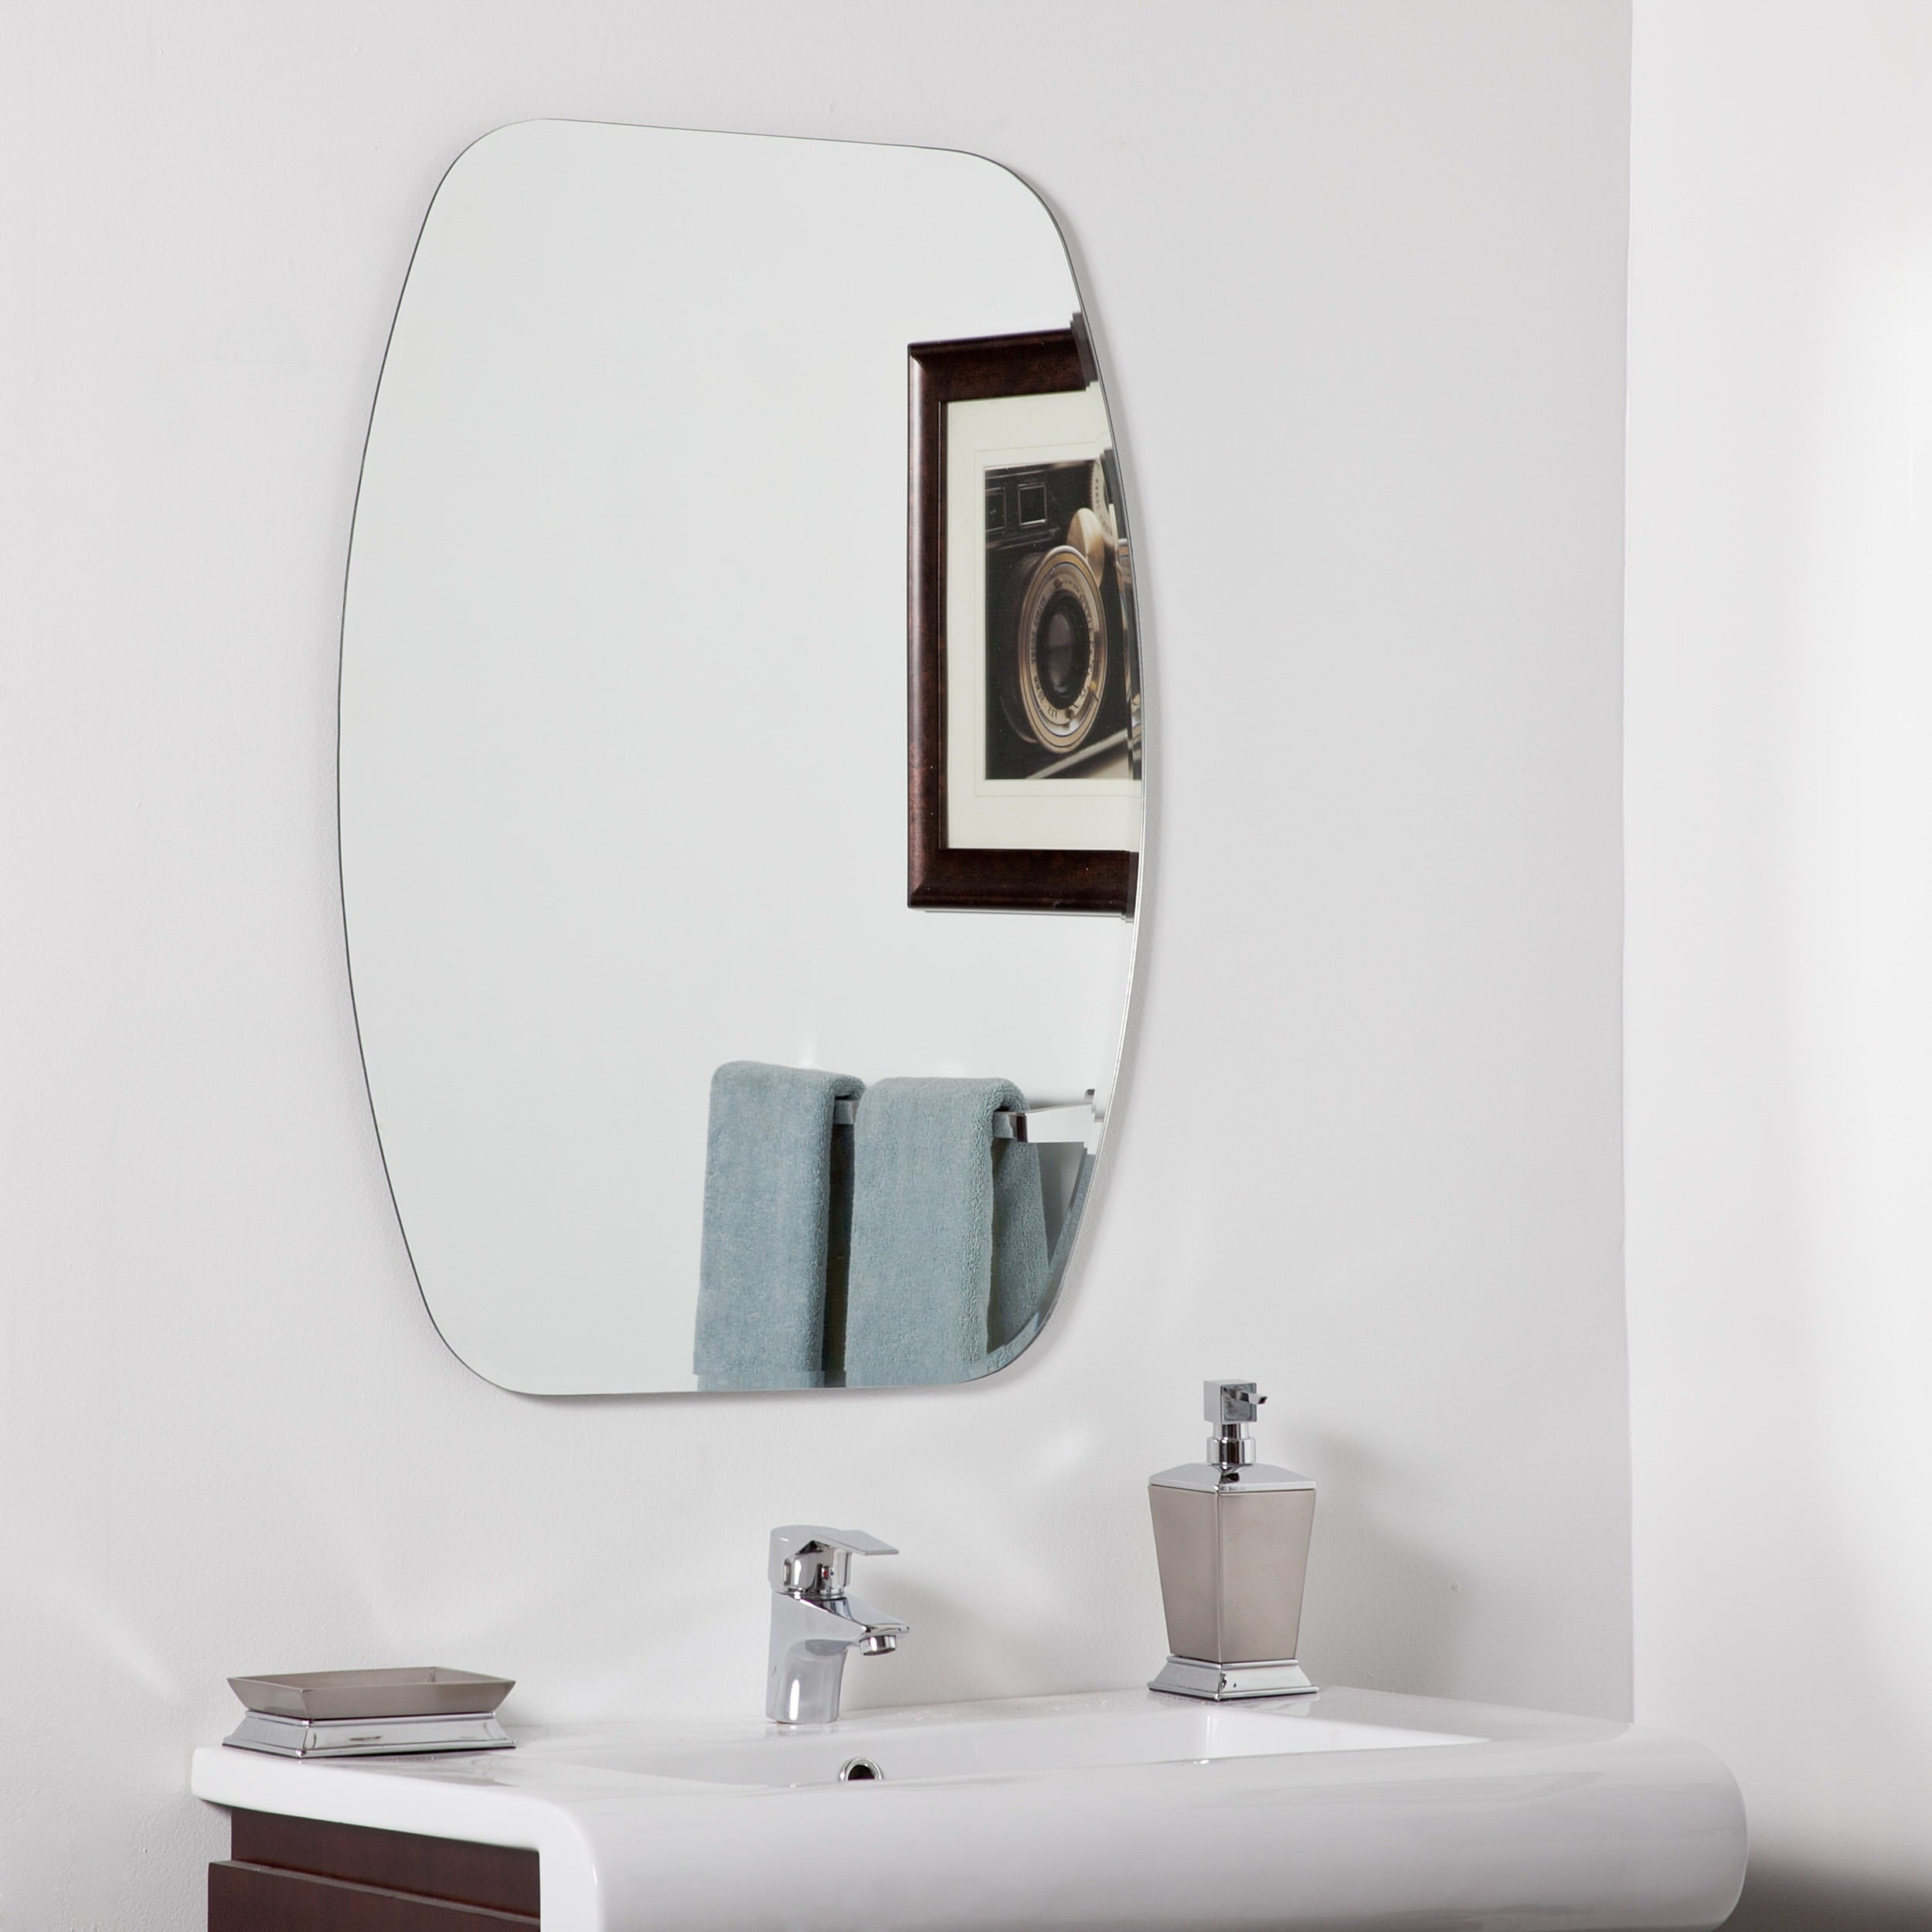 Buy Decor Wonderland Mirrors Online at Overstock.com | Our Best ...